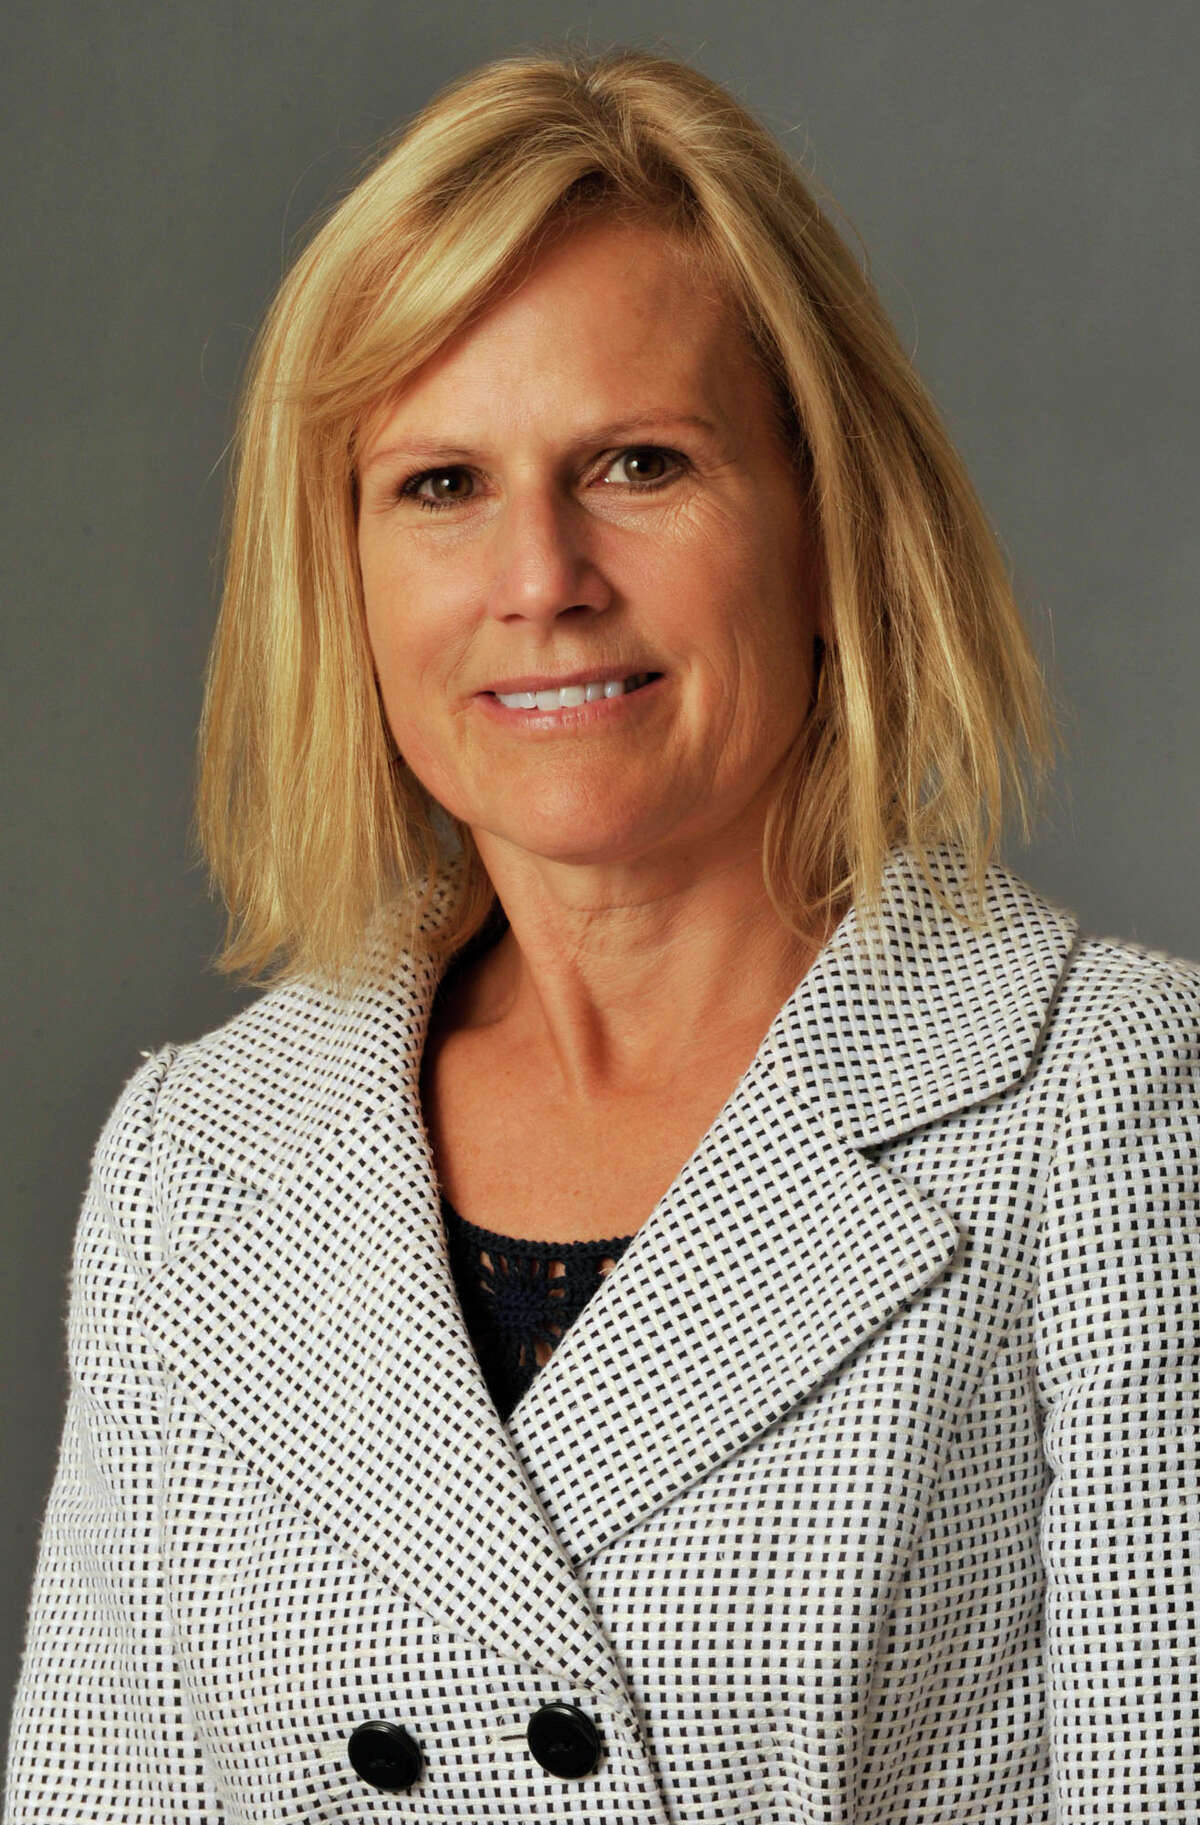 Lisa Wilson-Foley is a Republican candidate for the 5th Congressional District. Photographed on Tuesday, July 31, 2012.